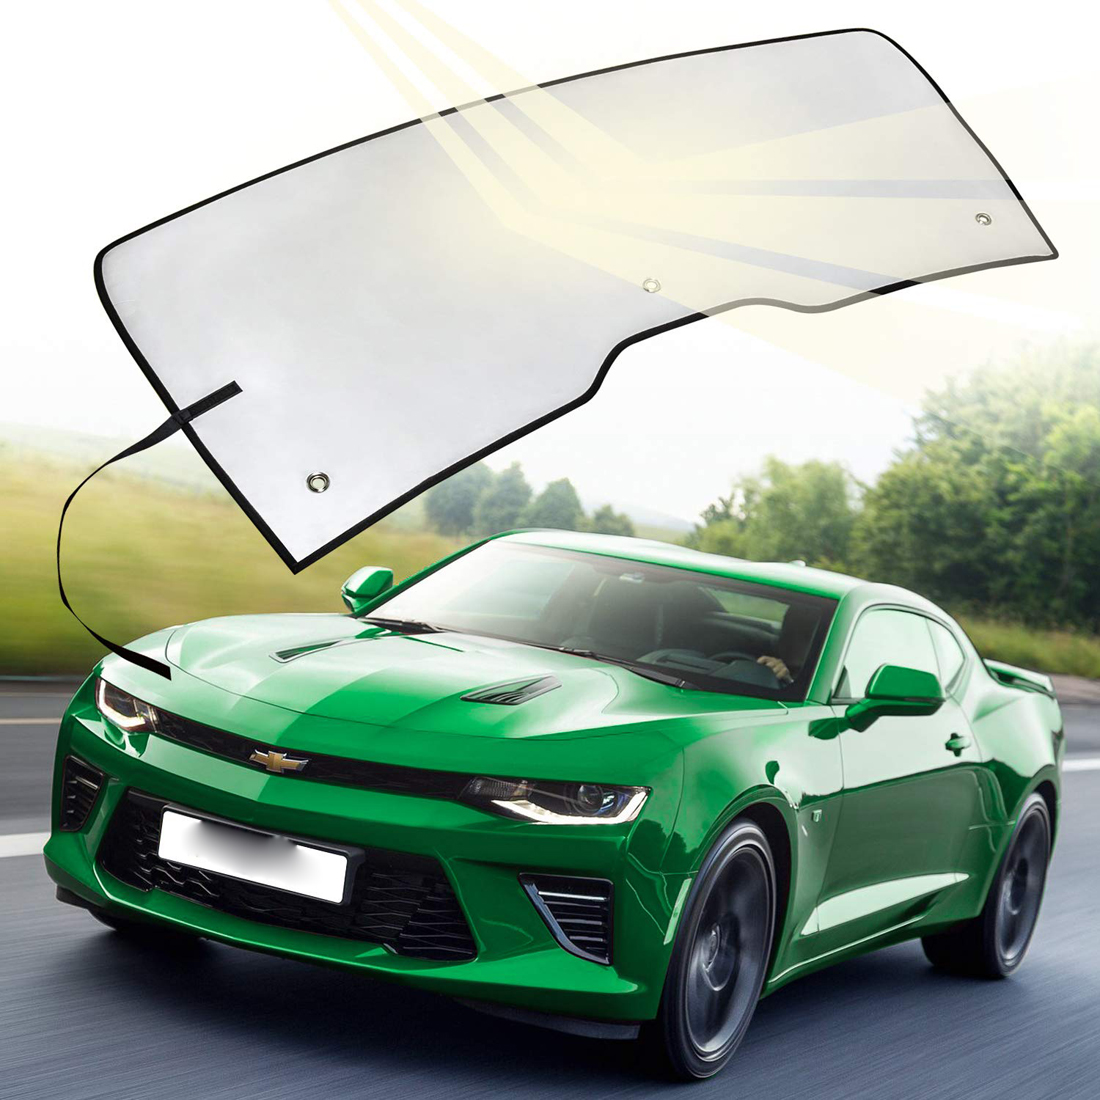 Intro-Tech Silver Custom Car Sunshade Windshield For Chevrolet 2016-2017 Camaro